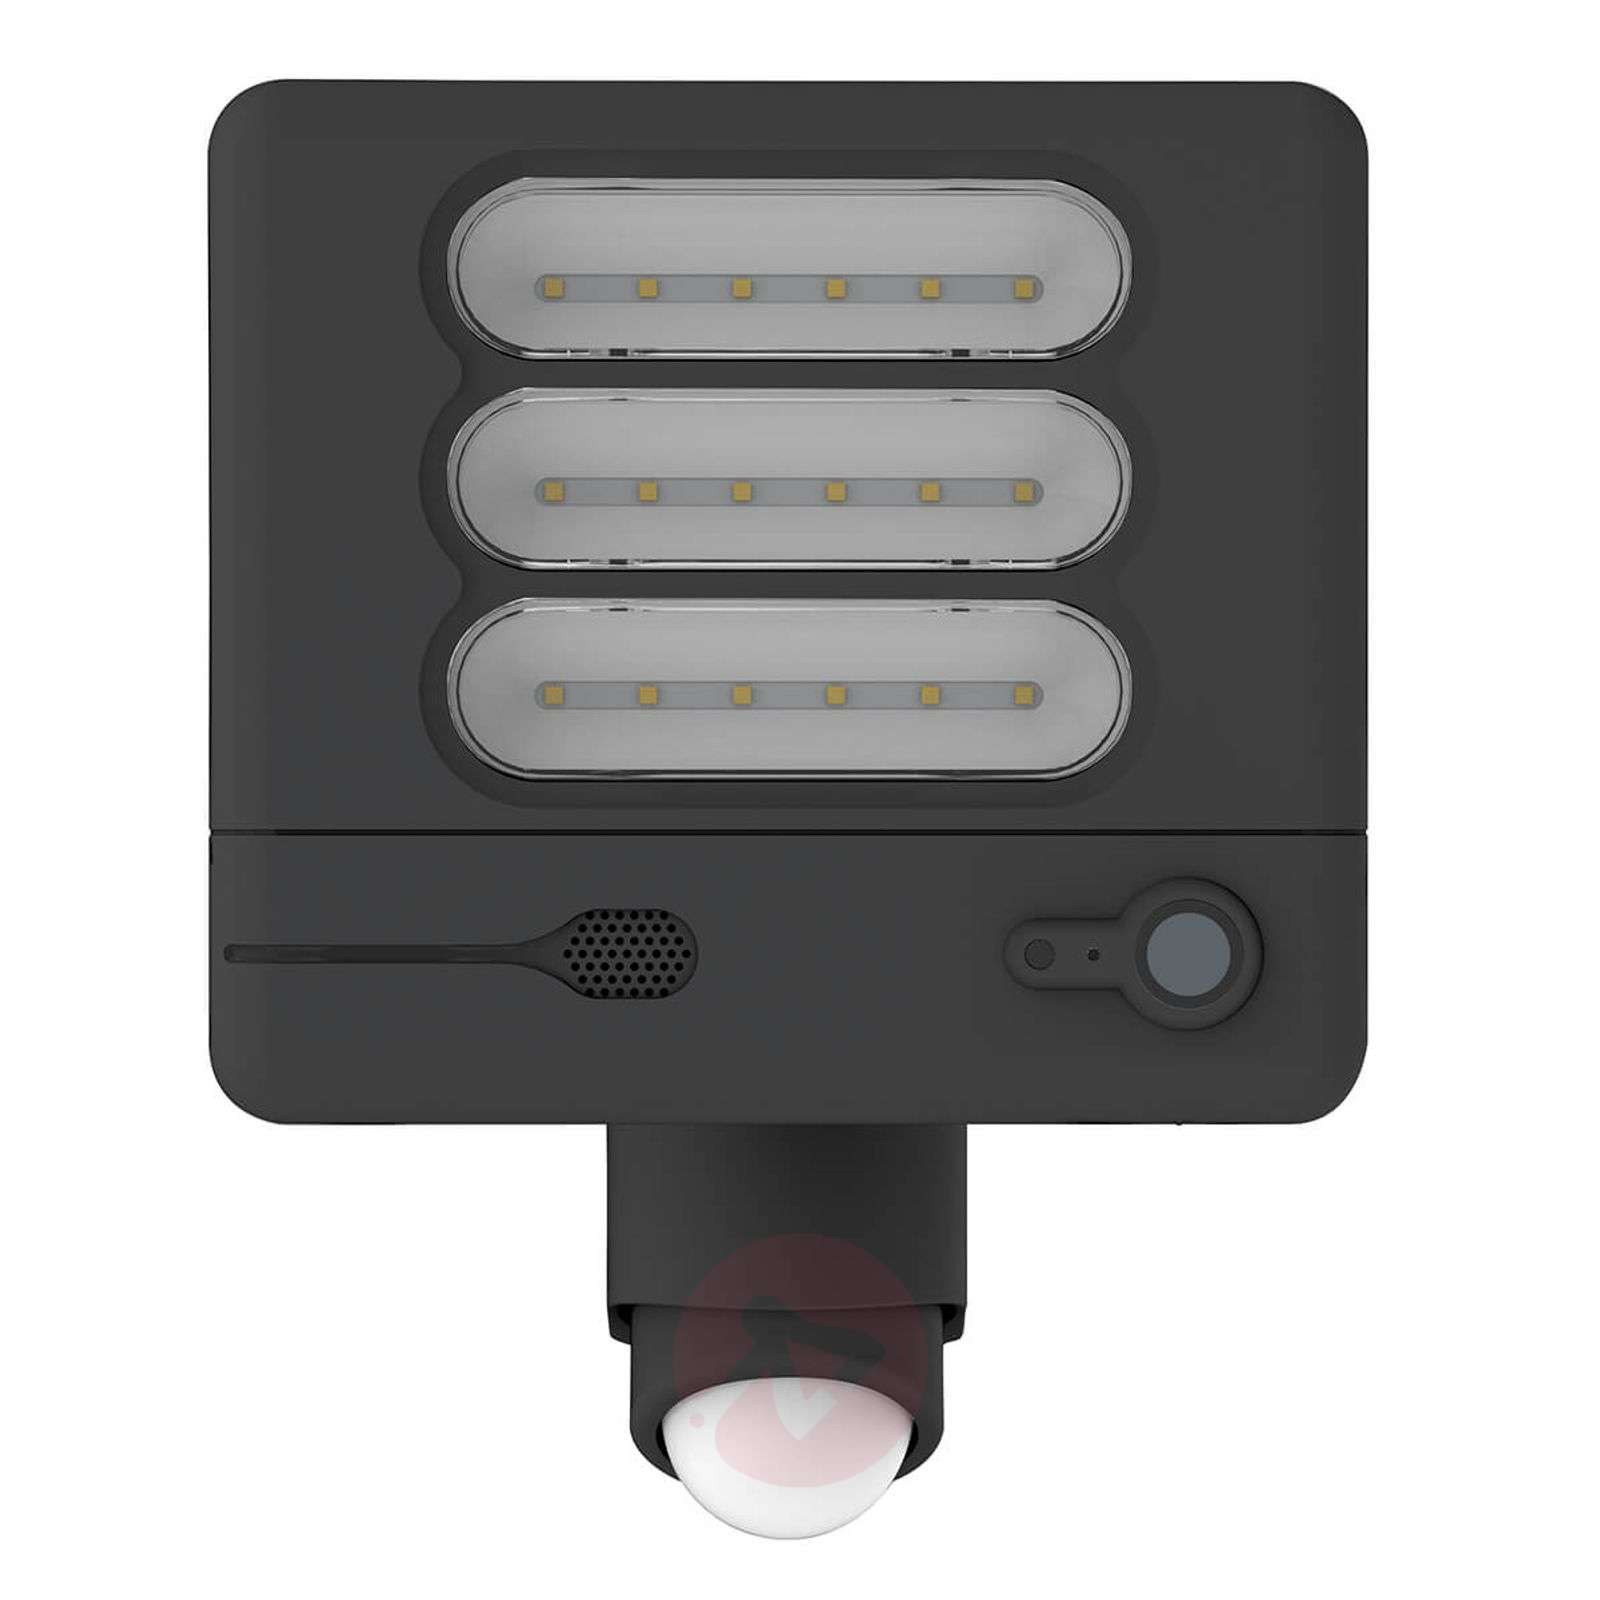 Esa Cam LED wall light with security camera-3006506-02